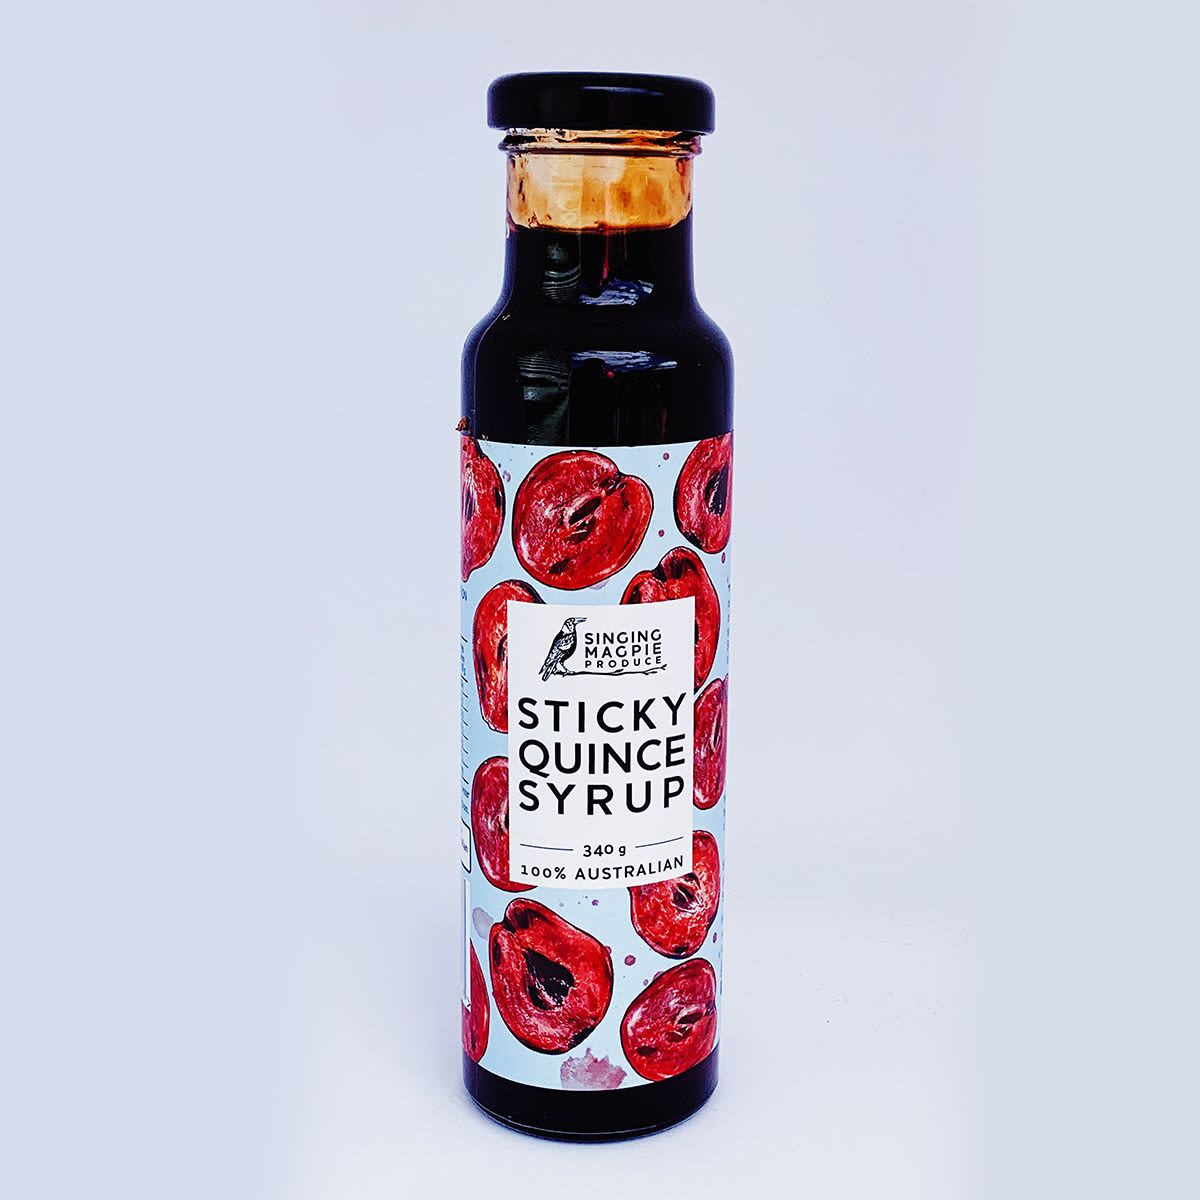 Singing Magpie Produce - Sticky Quince Syrup